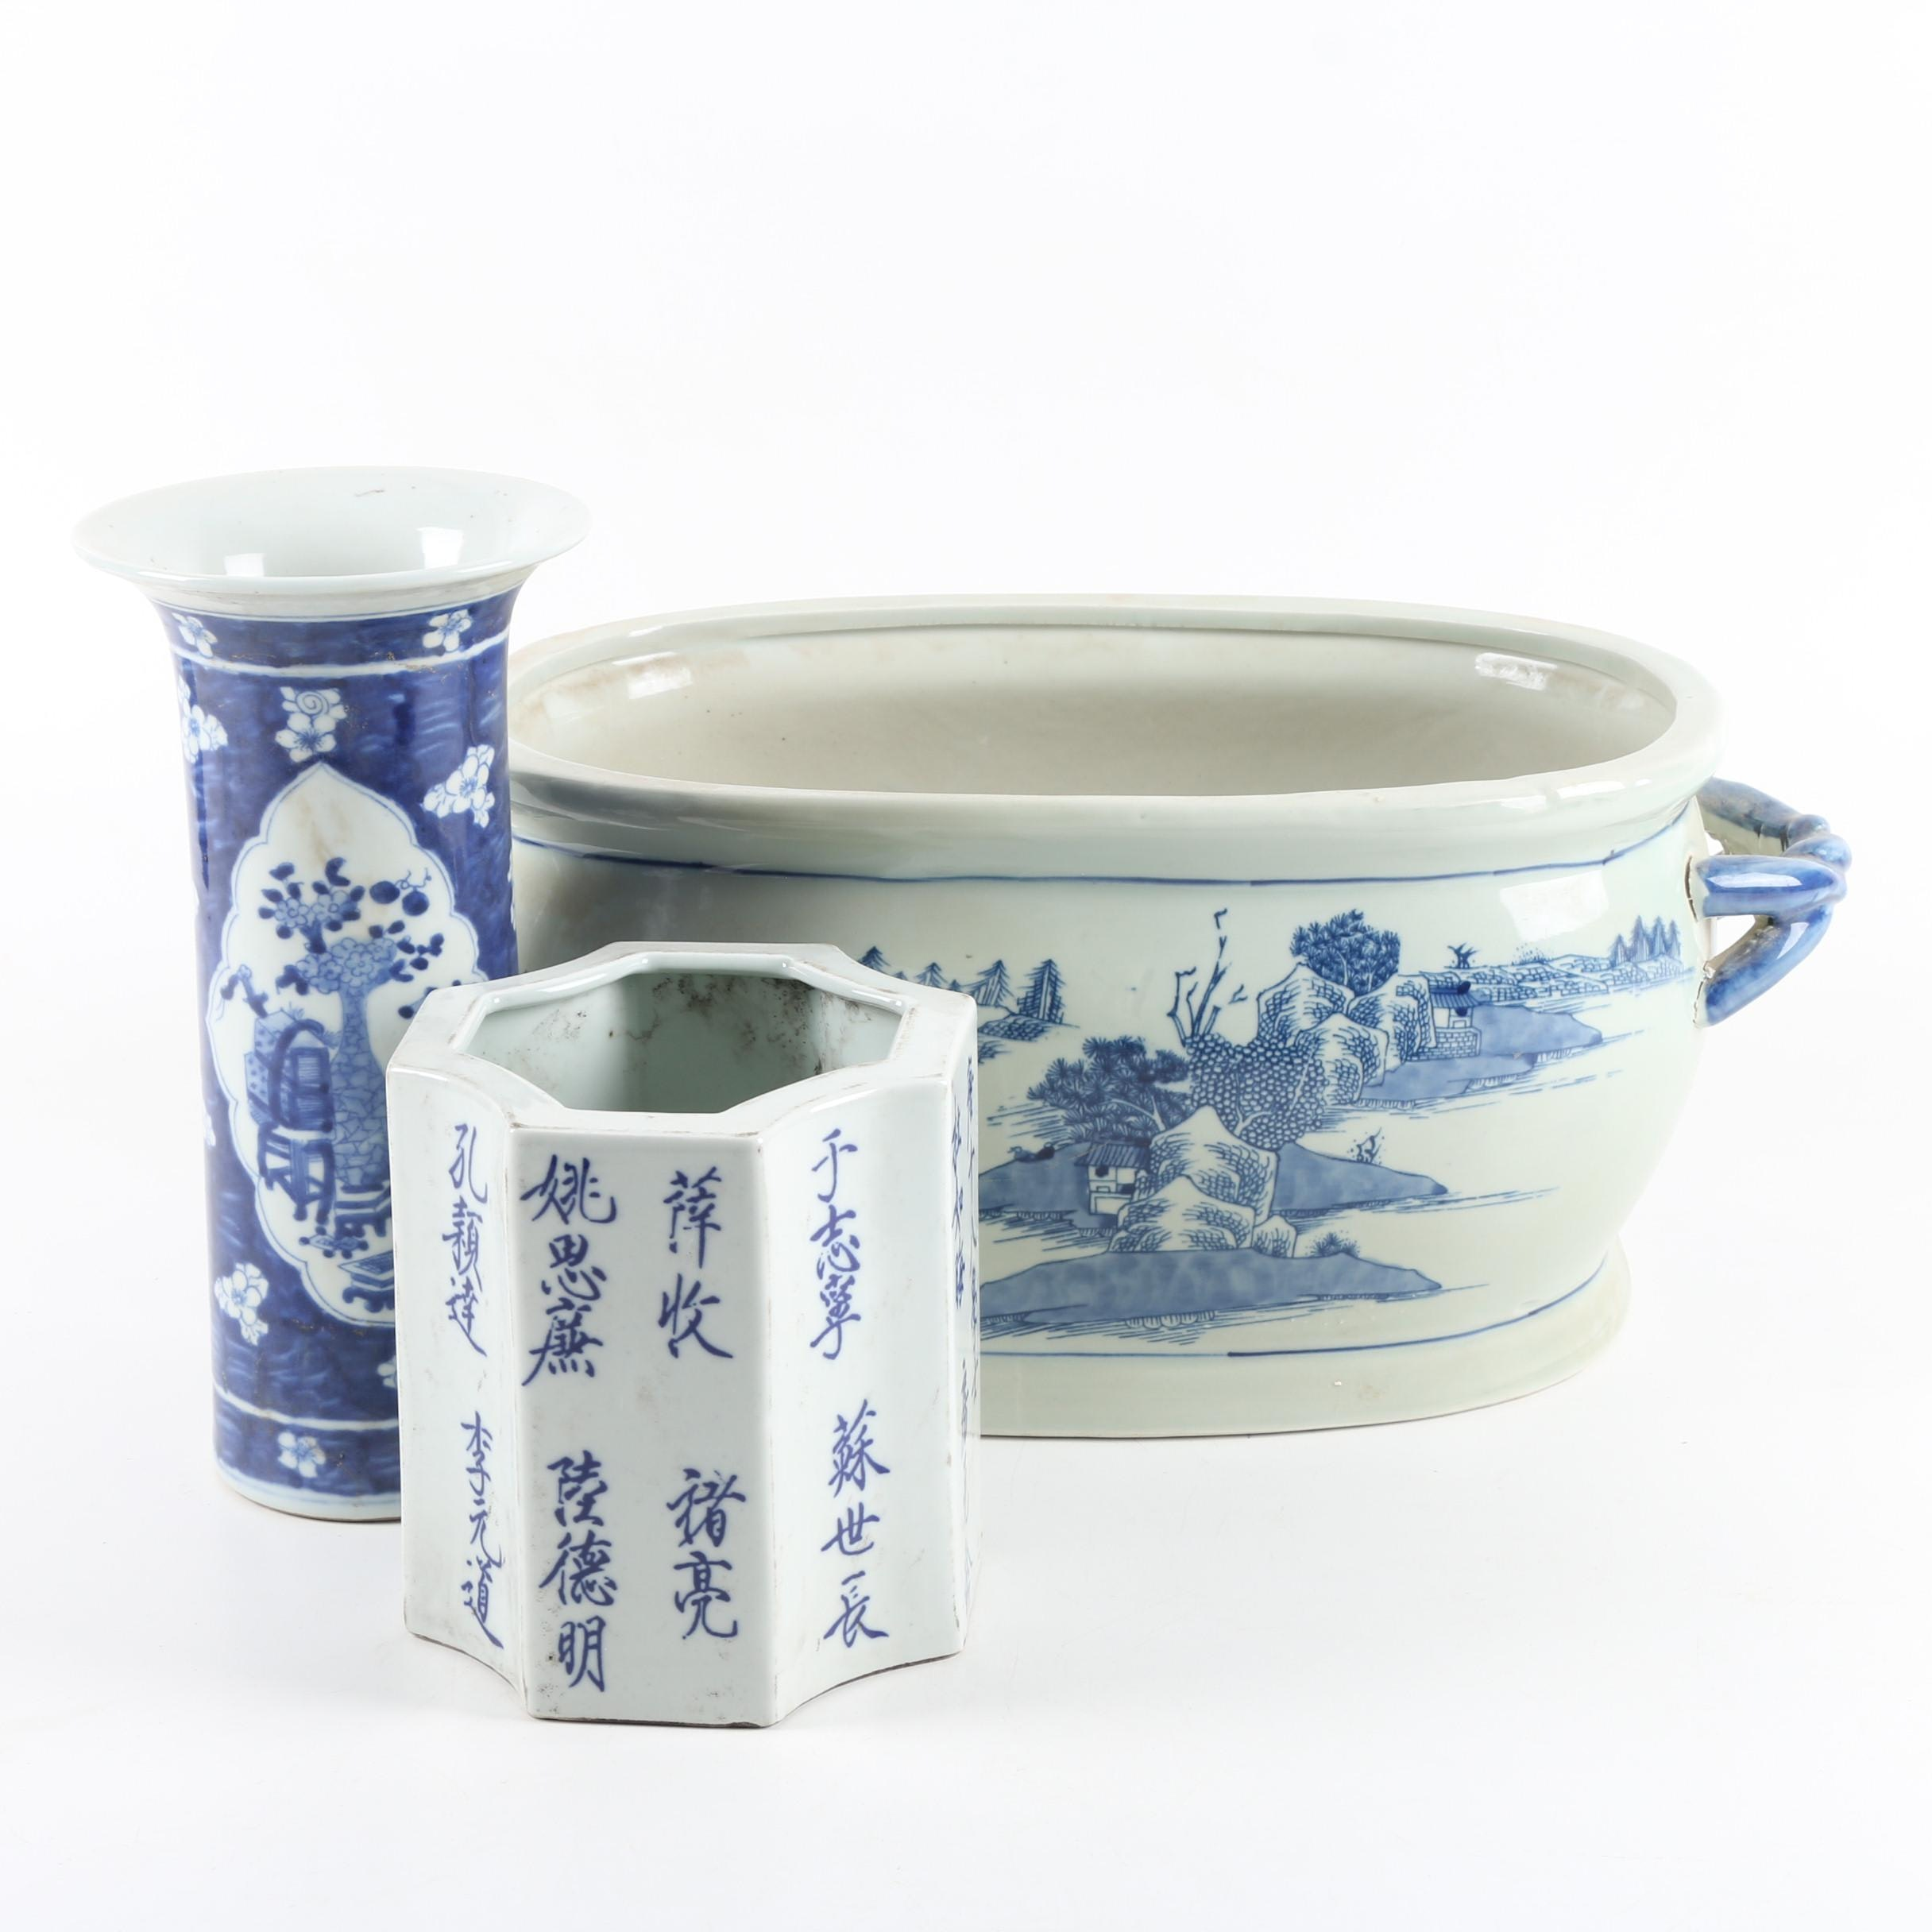 Chinese Ceramic Blue-and-White Planters and Vase